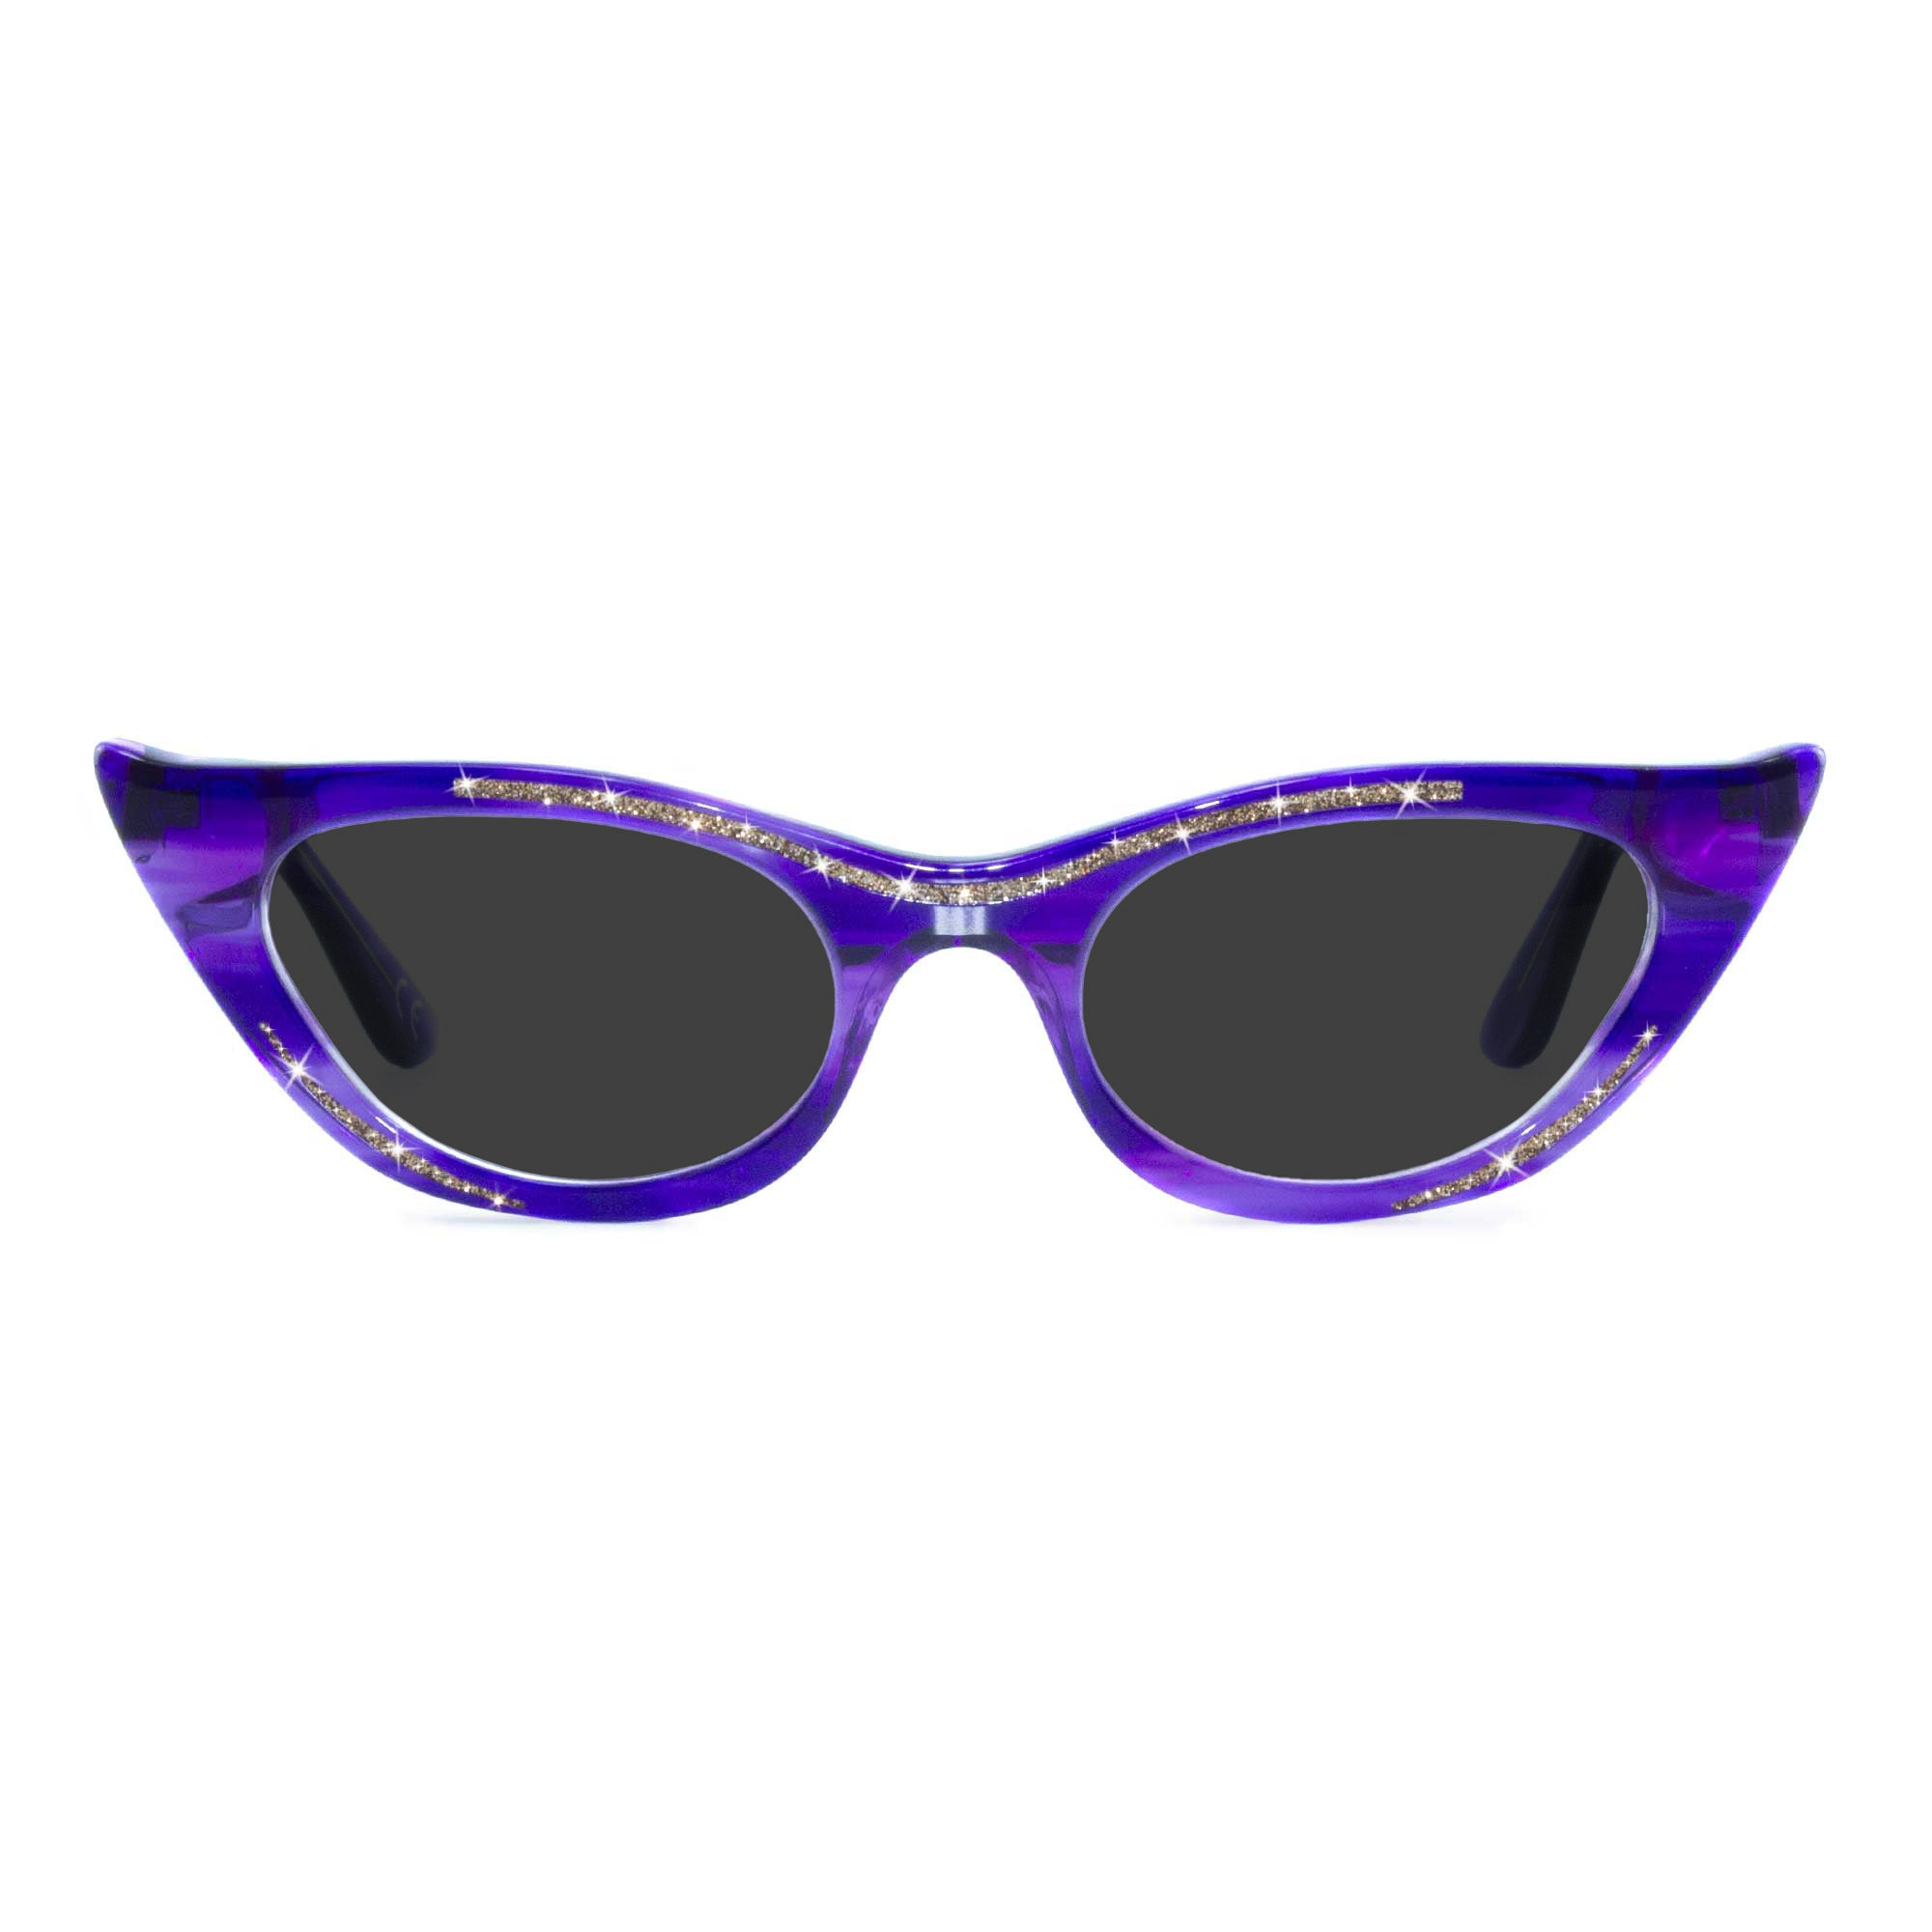 purple winged cat eye sunglasses